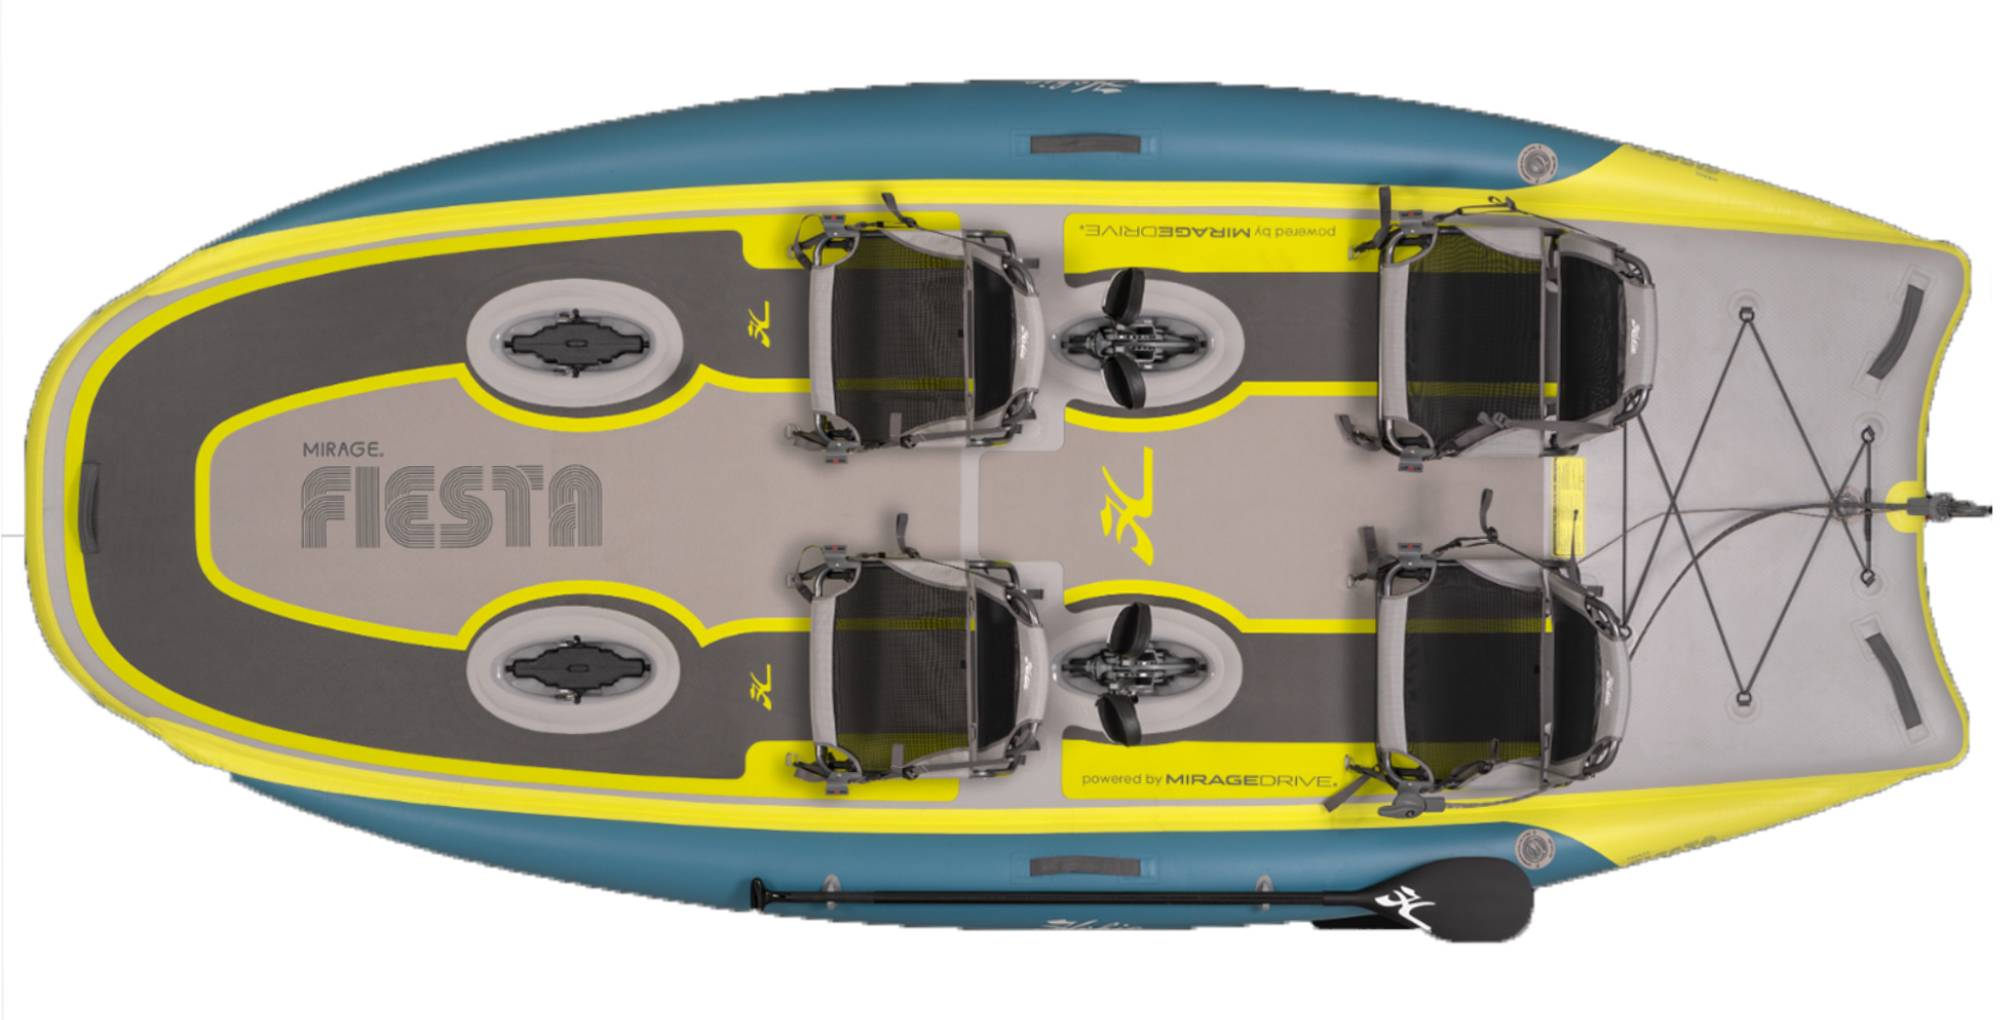 hobie fiesta inflatable 4 person kayak